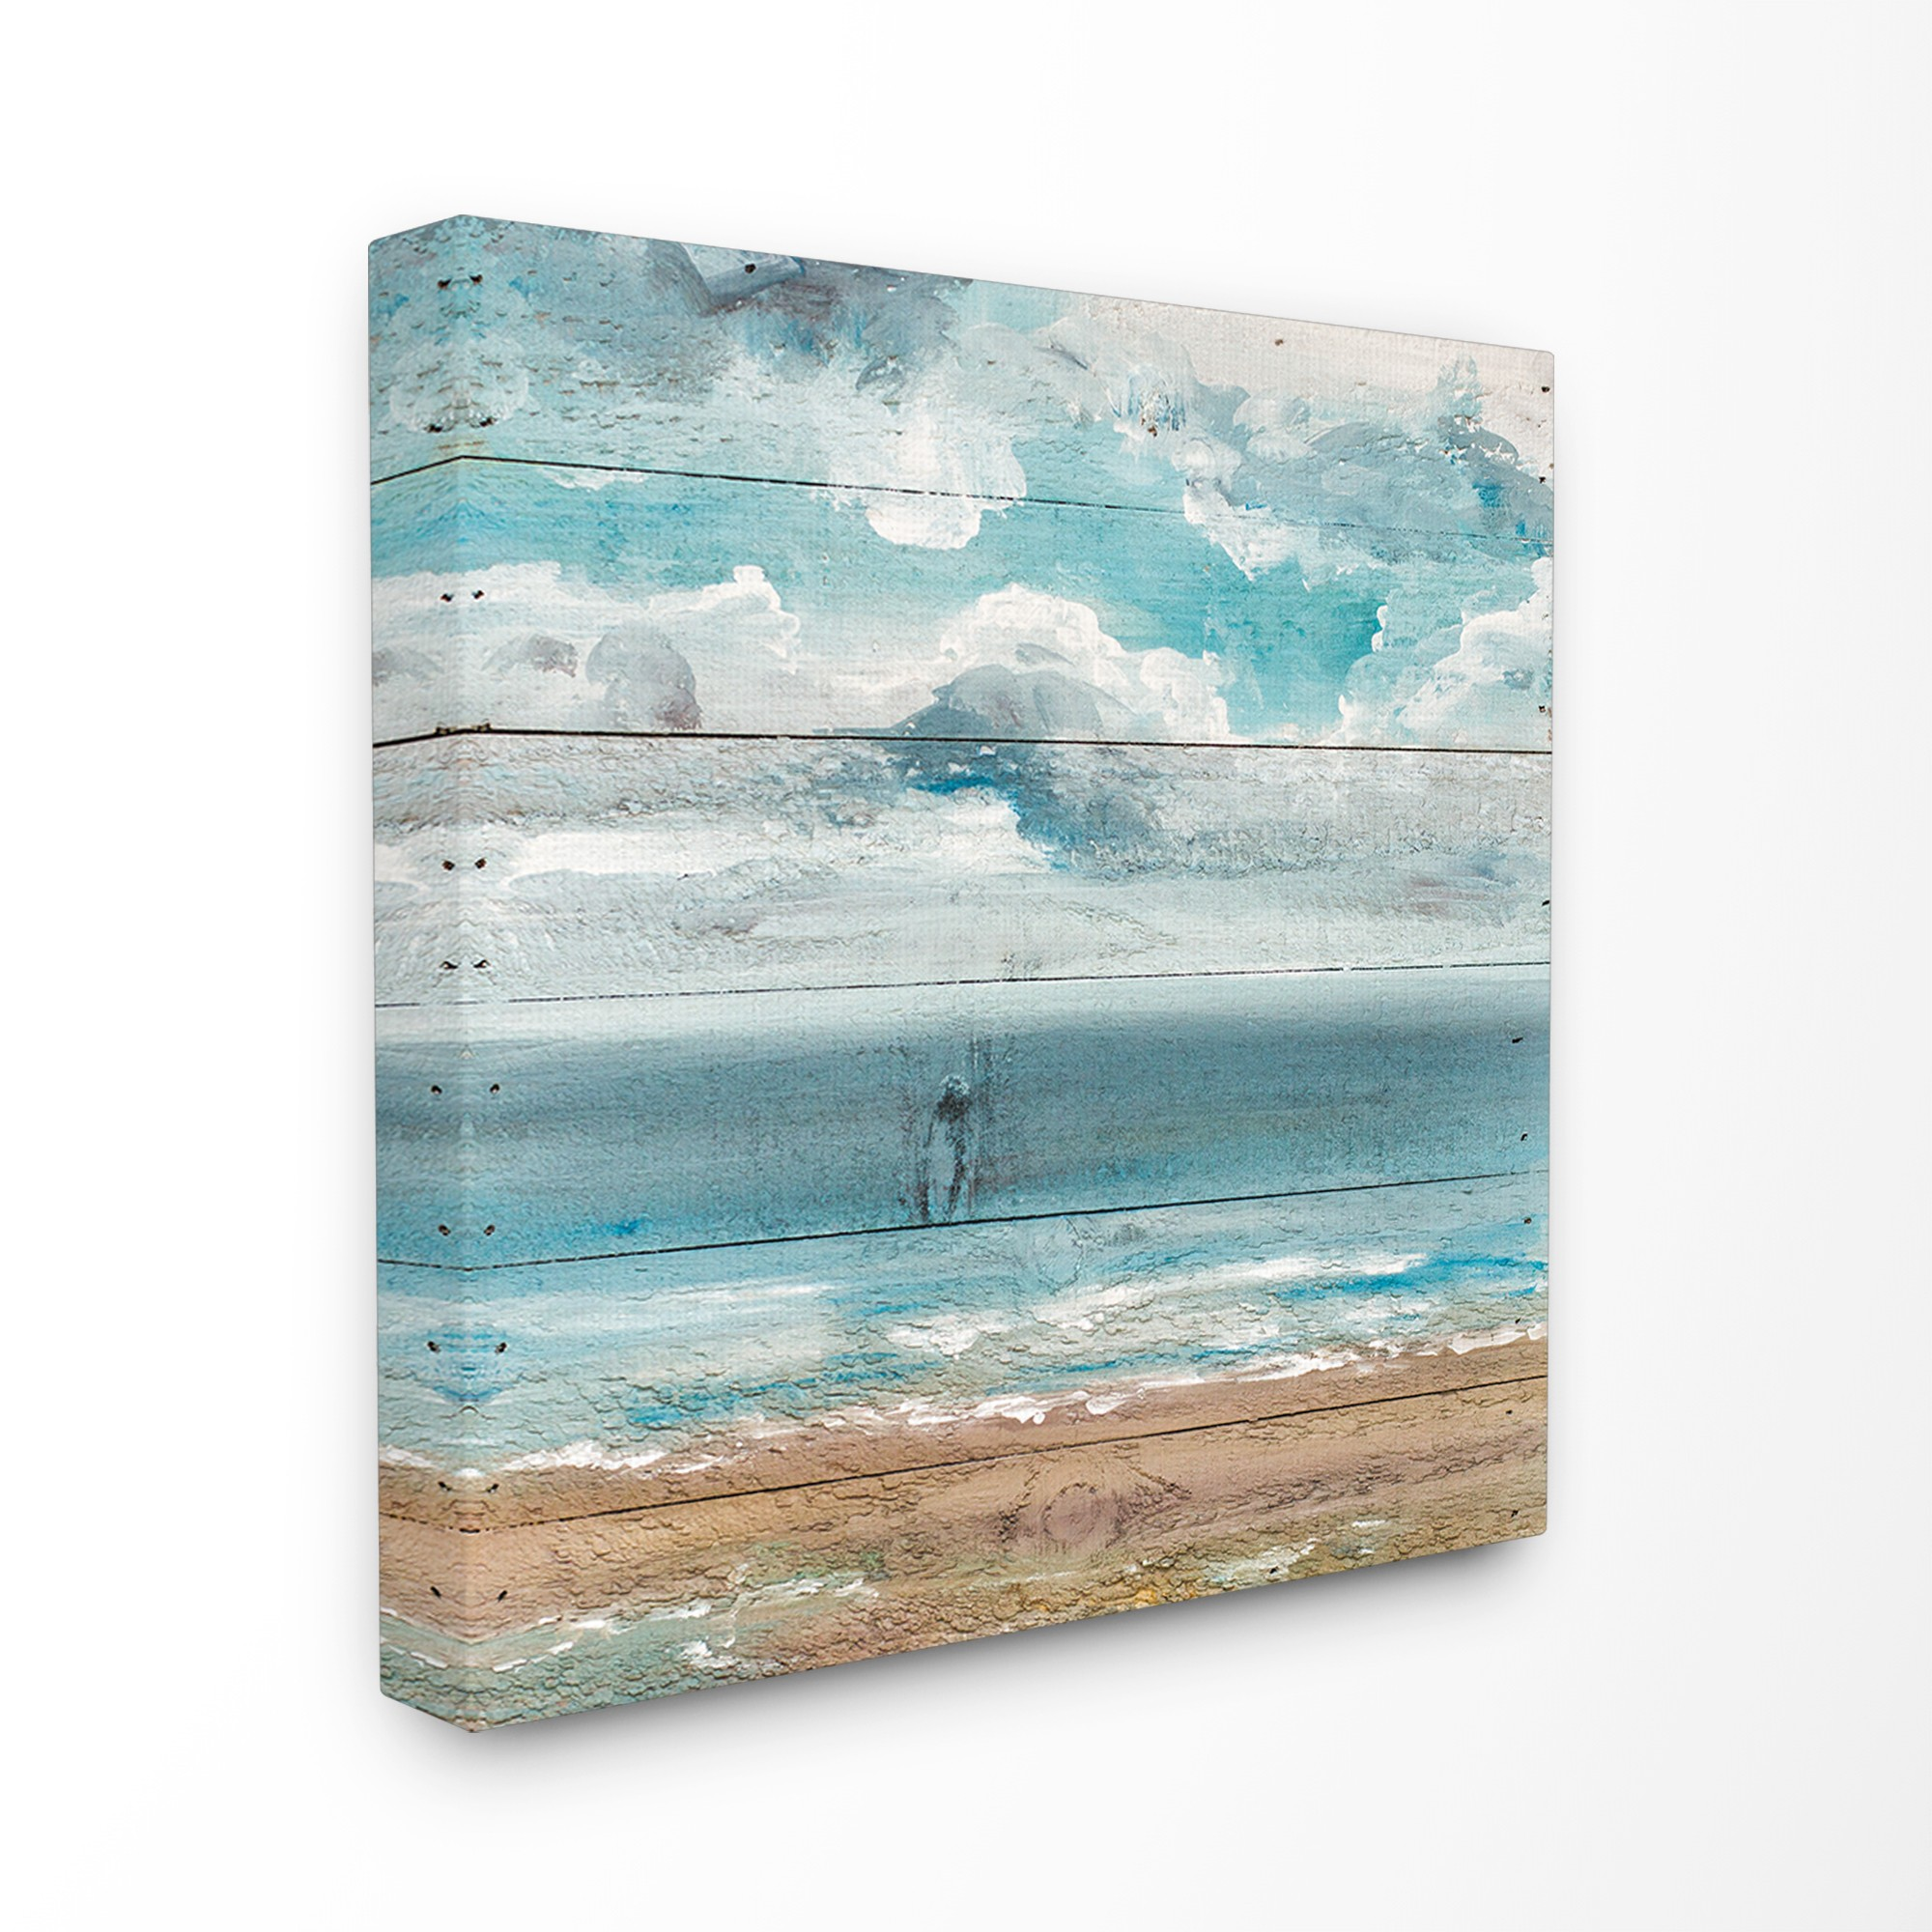 The Stupell Home Decor Collection Ocean View Painted Planked Look Stretched Canvas Wall Art, 17 x 1.5 x 17